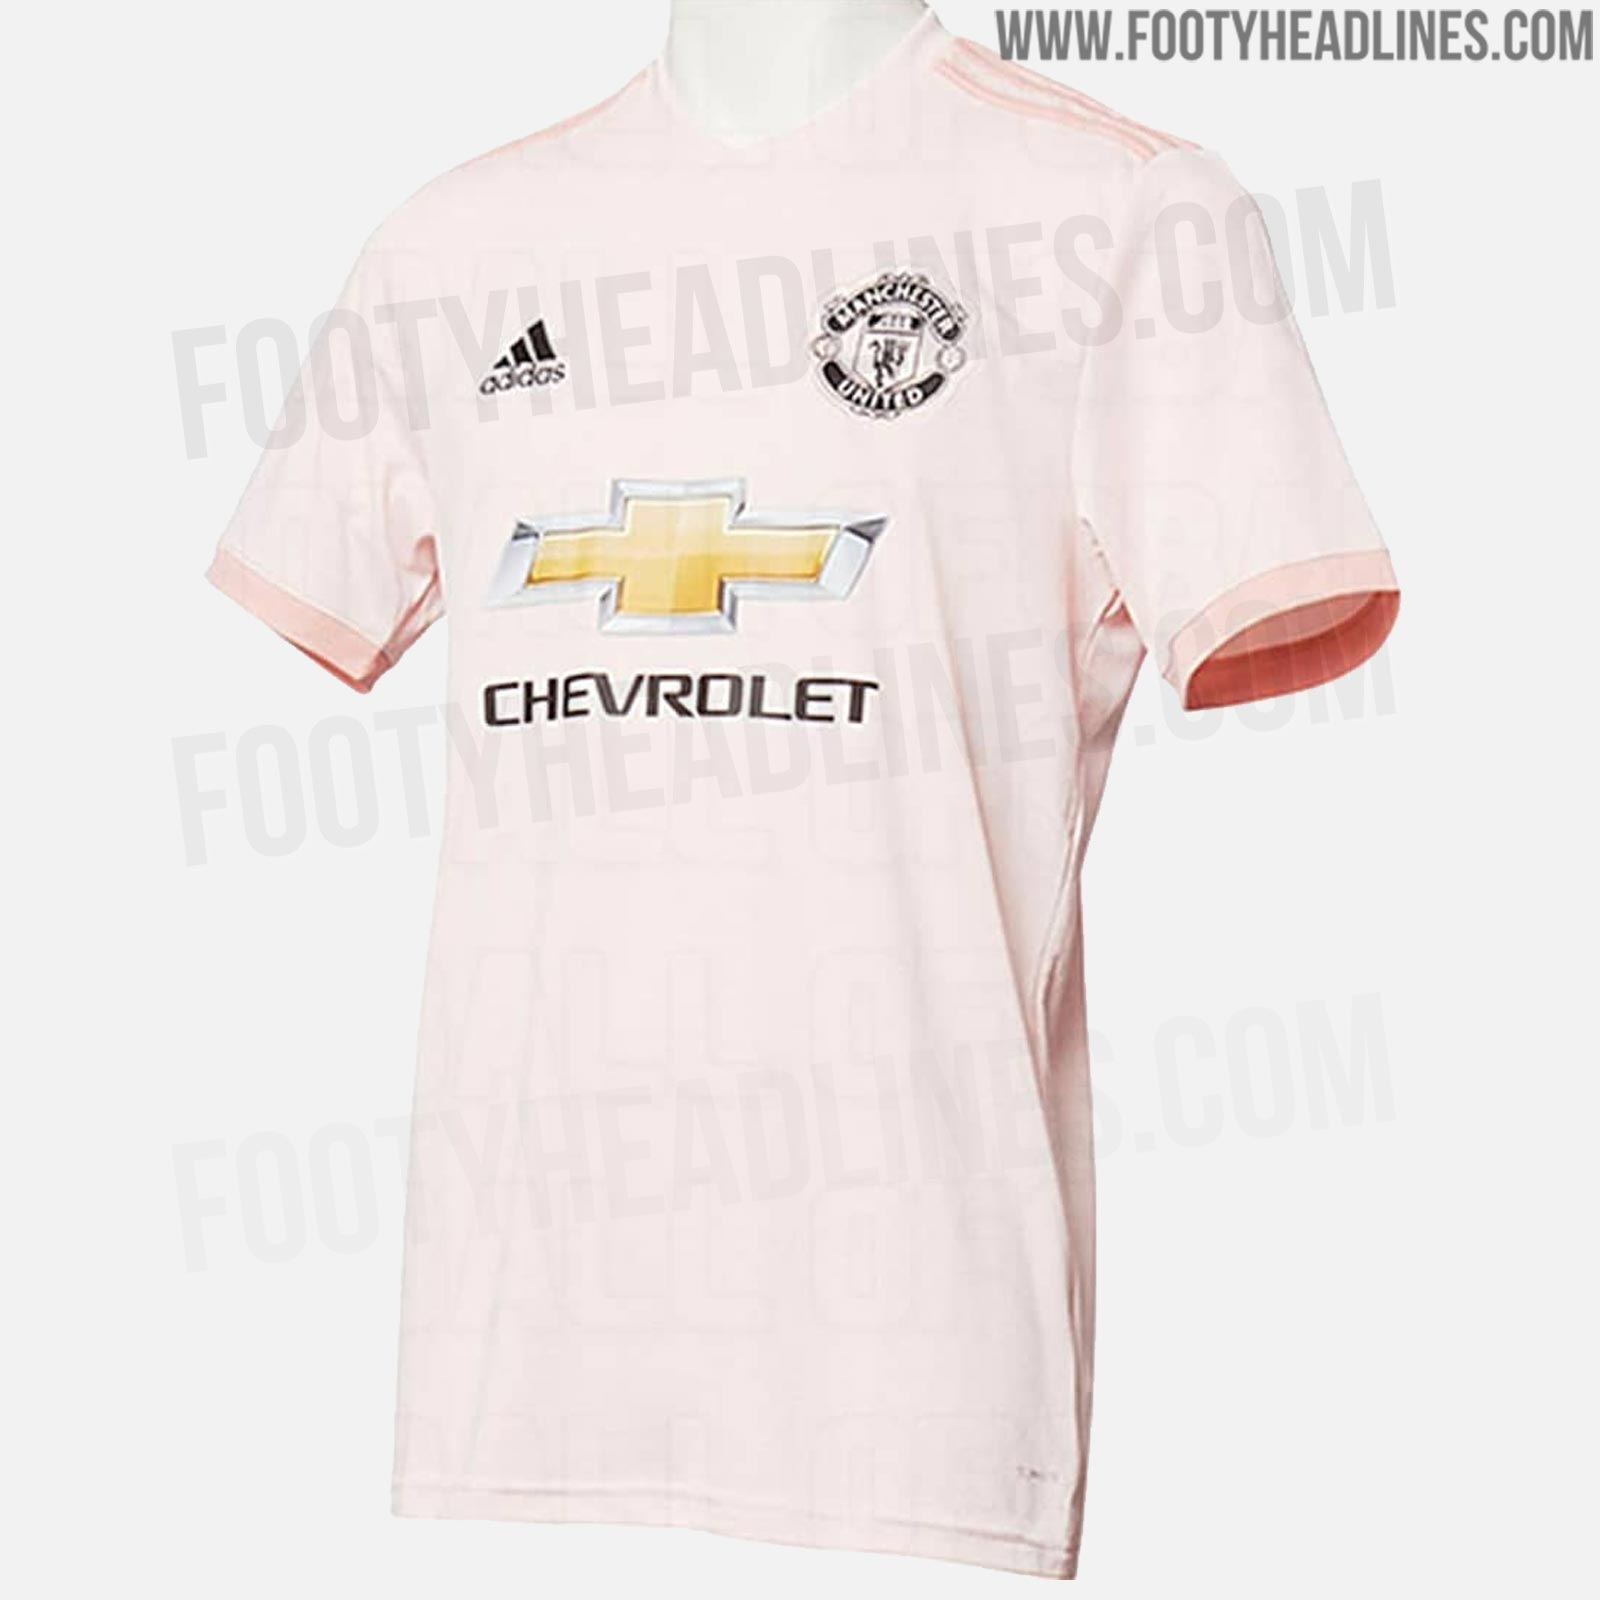 low priced 21a39 d7a94 Images leaked of Manchester United's new pink away shirt ...